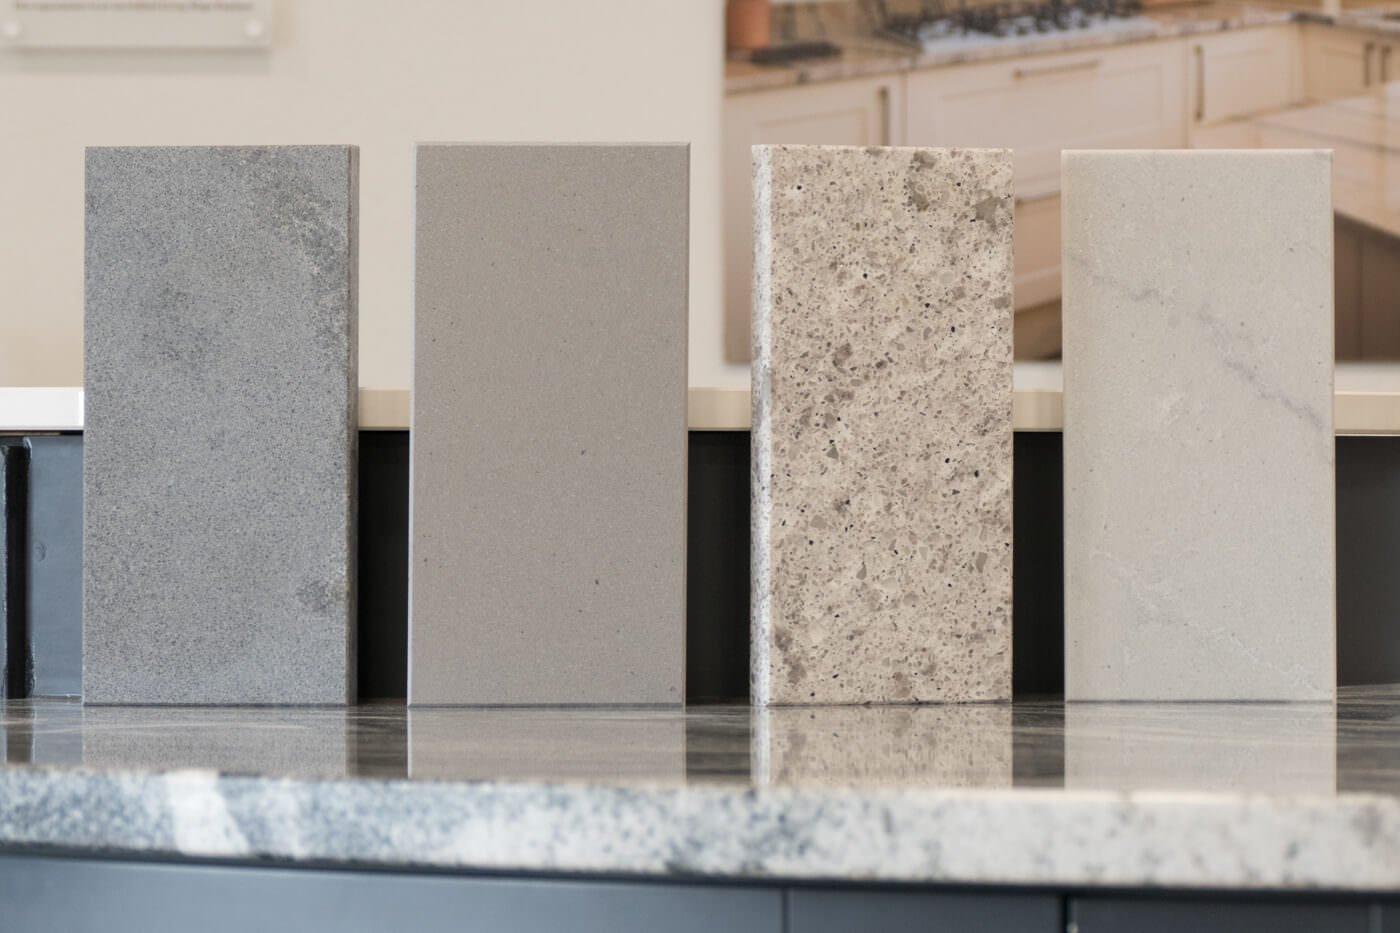 Caesarstone Quartz Worktops We Look At Four New Samples From This Leading Manufacturer